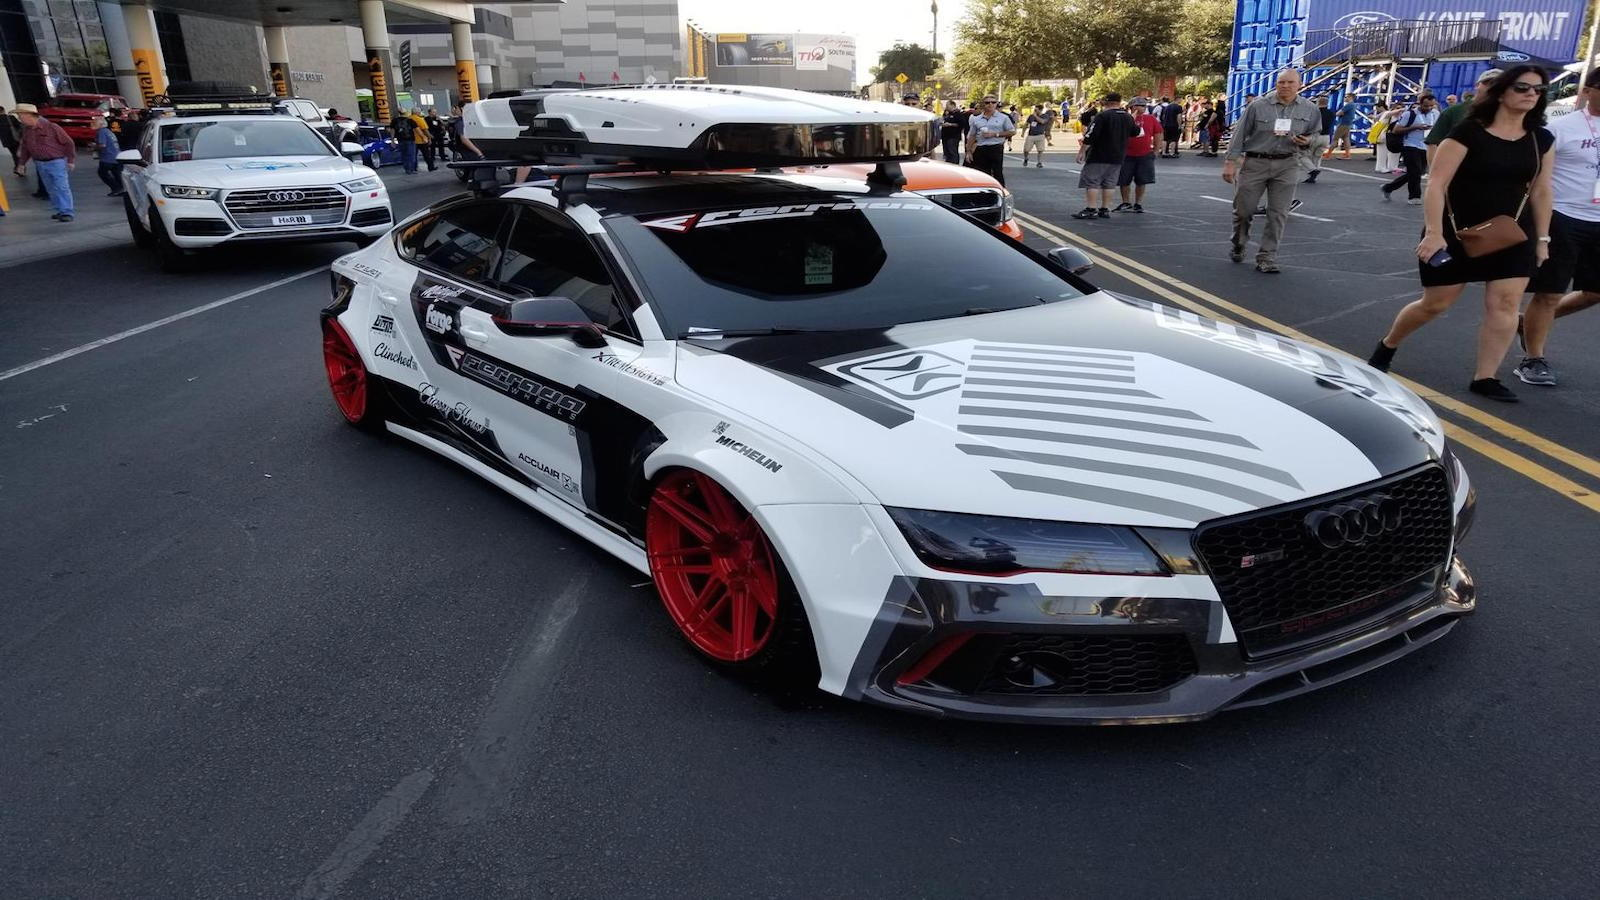 700hp Audi RS7 SEMA Build